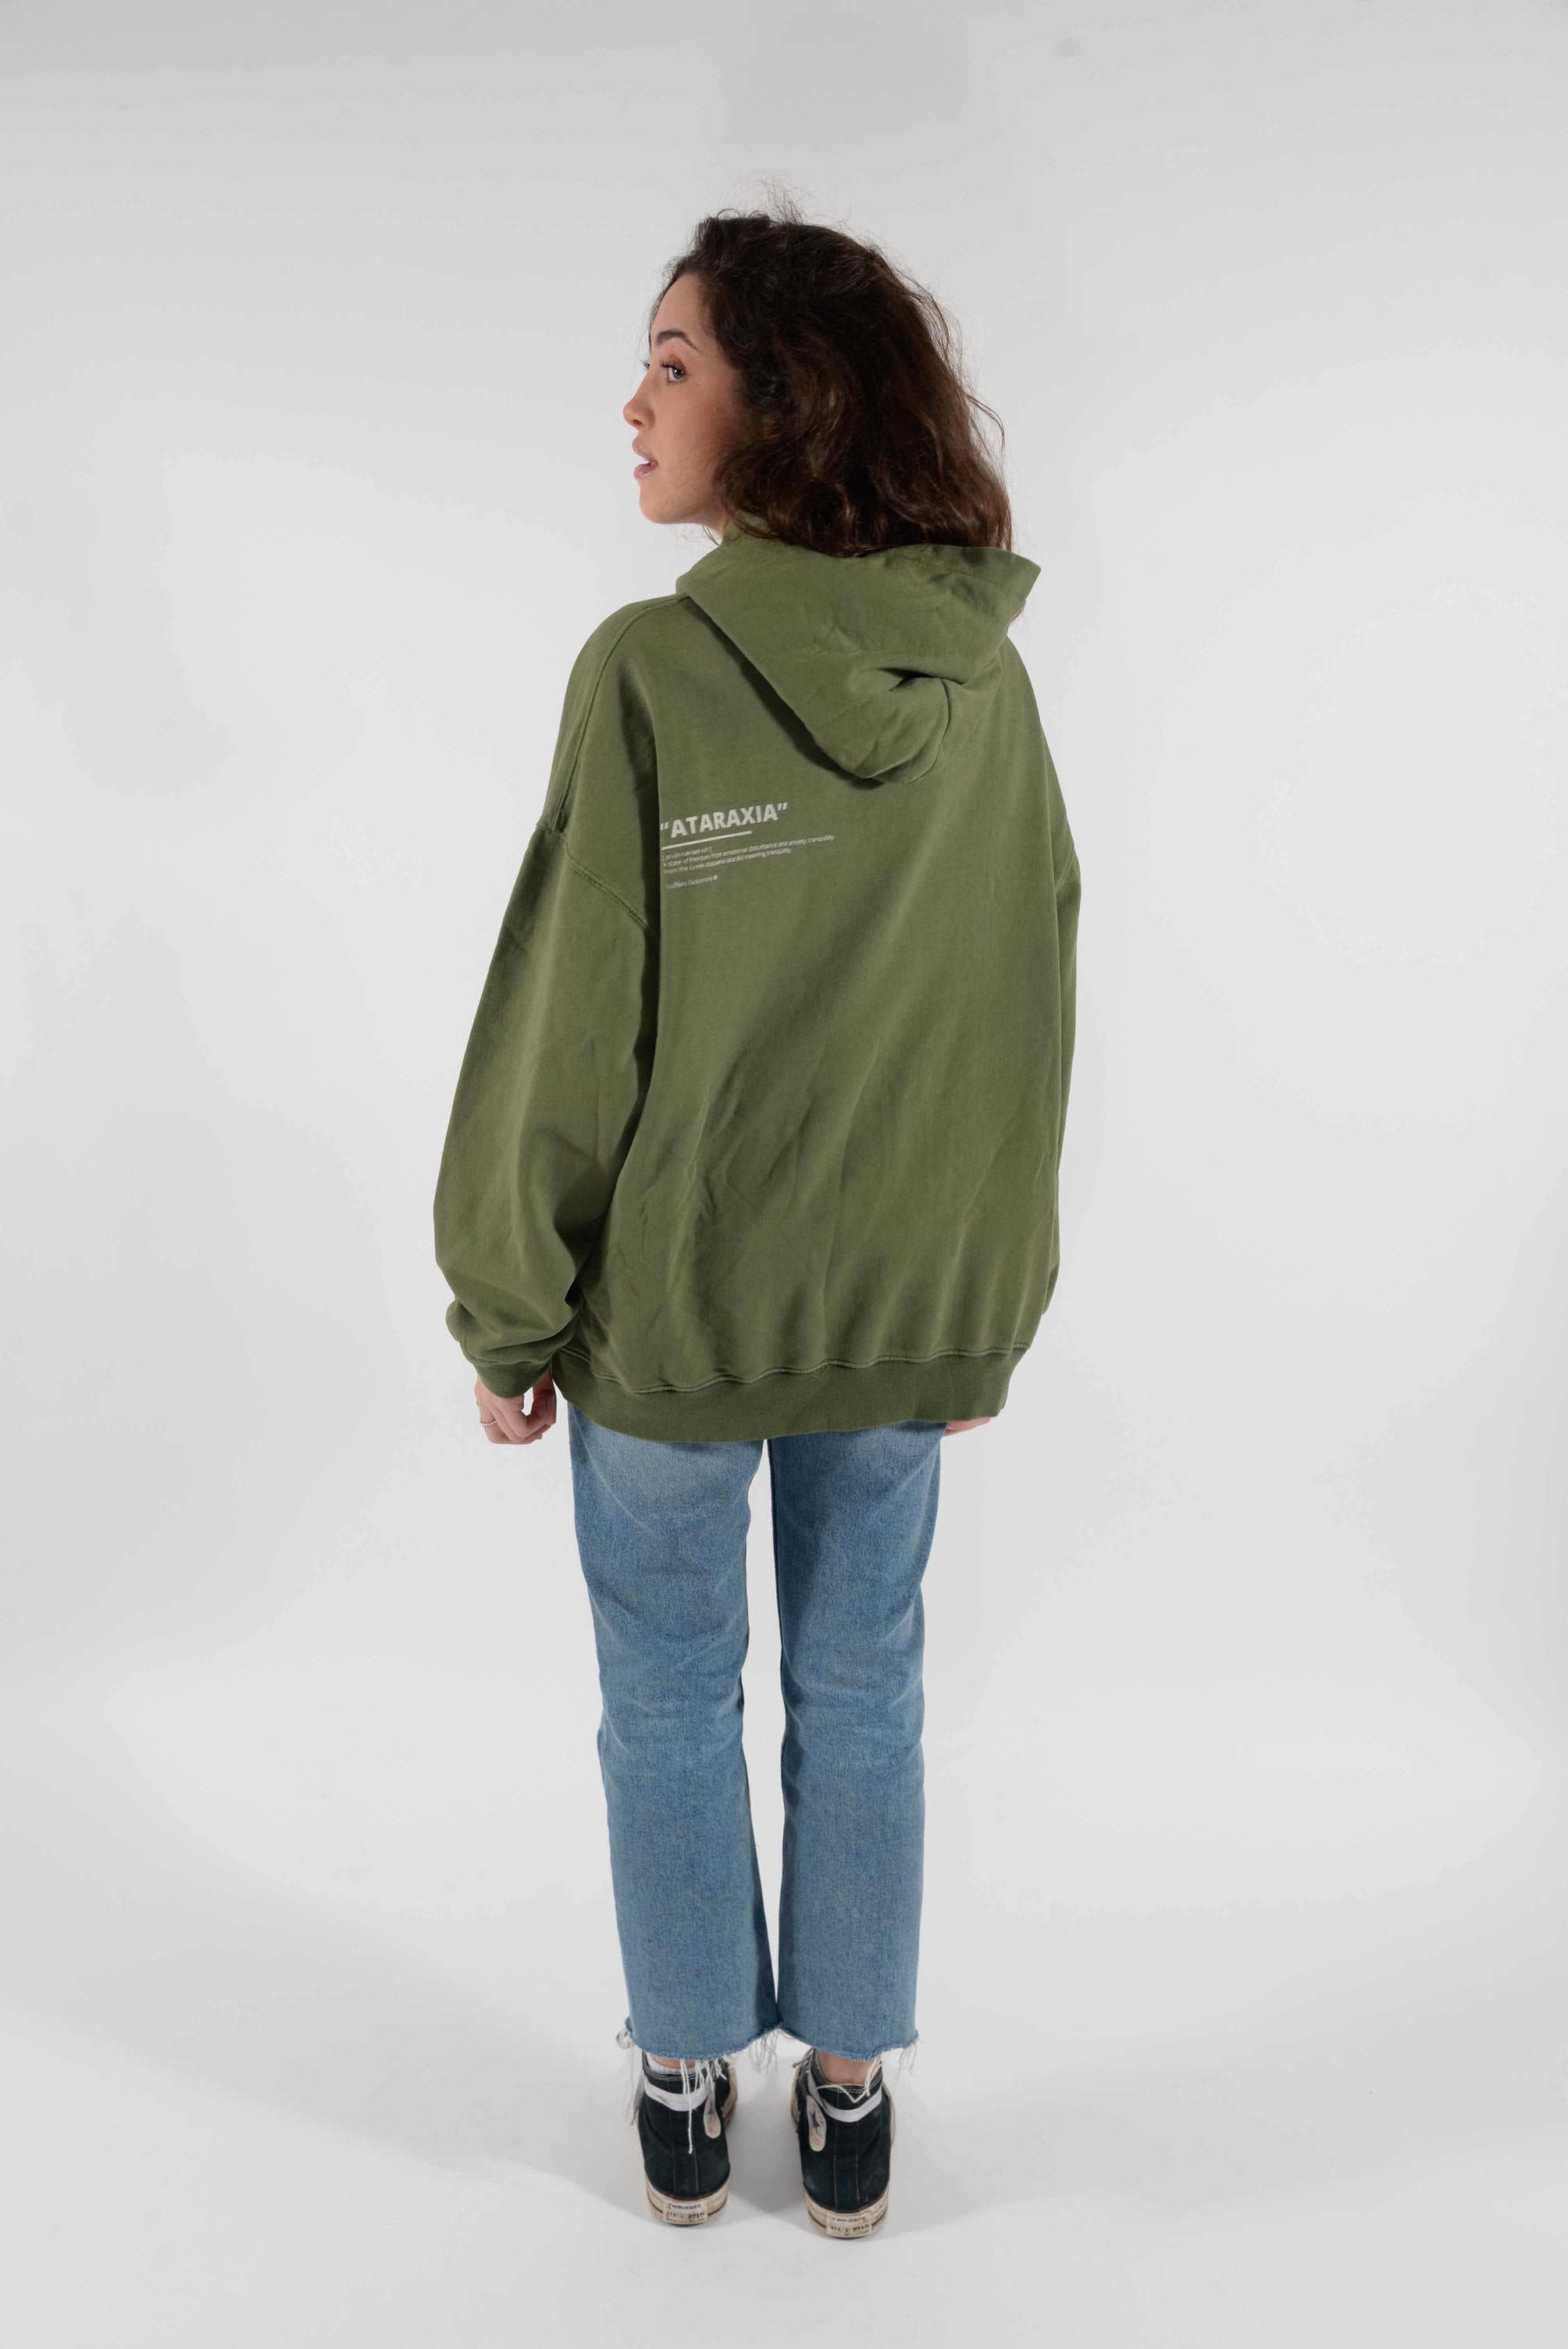 Ataraxia Hoodie Burnt Olive - Scuffers